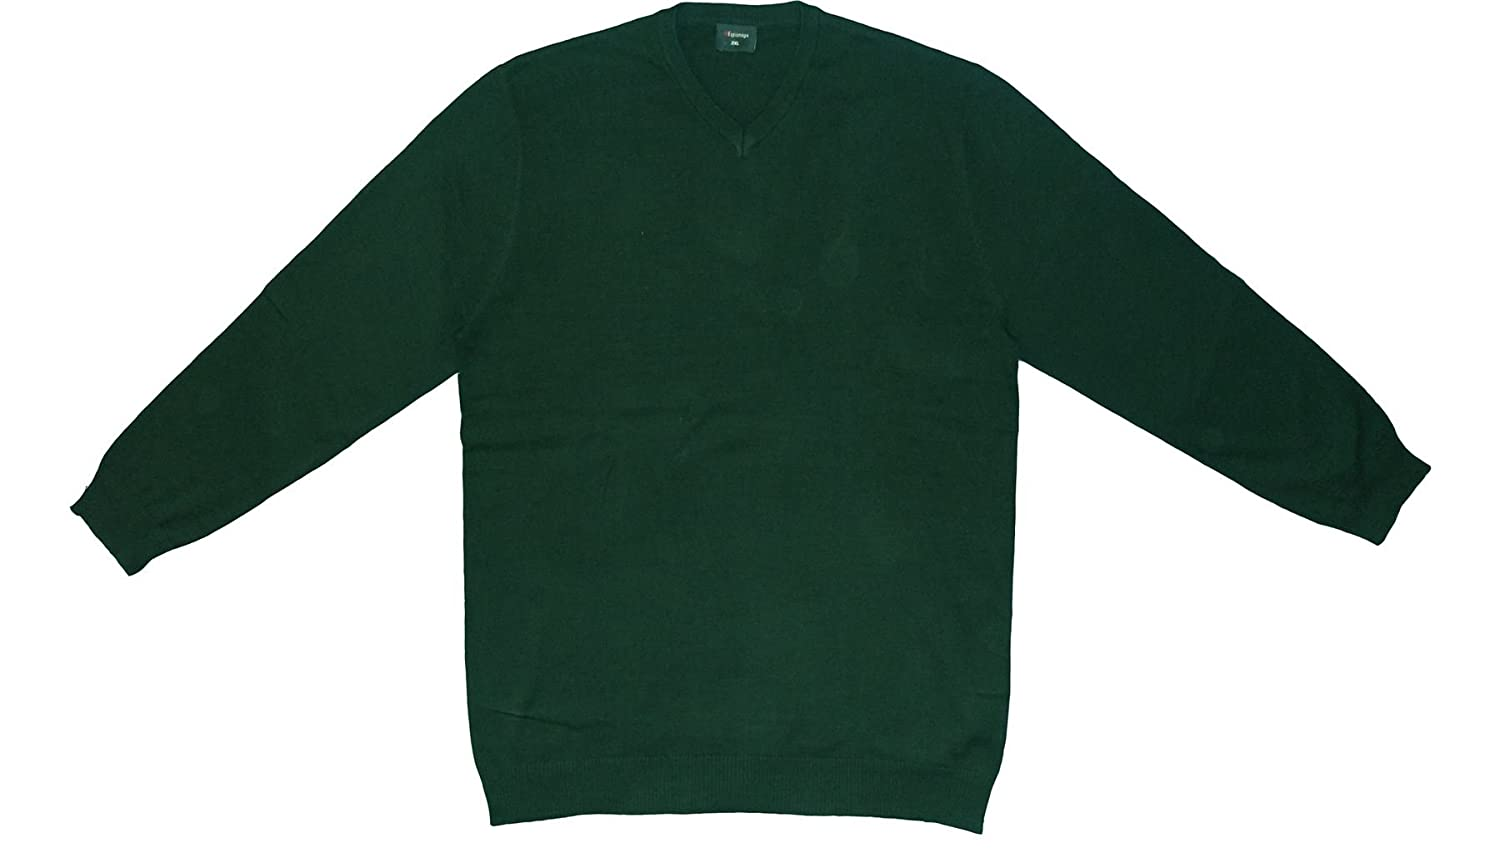 Espionage Premium Cotton V Neck Pull Over (KW031) in Bottle Green, Size 2XL to 6XL